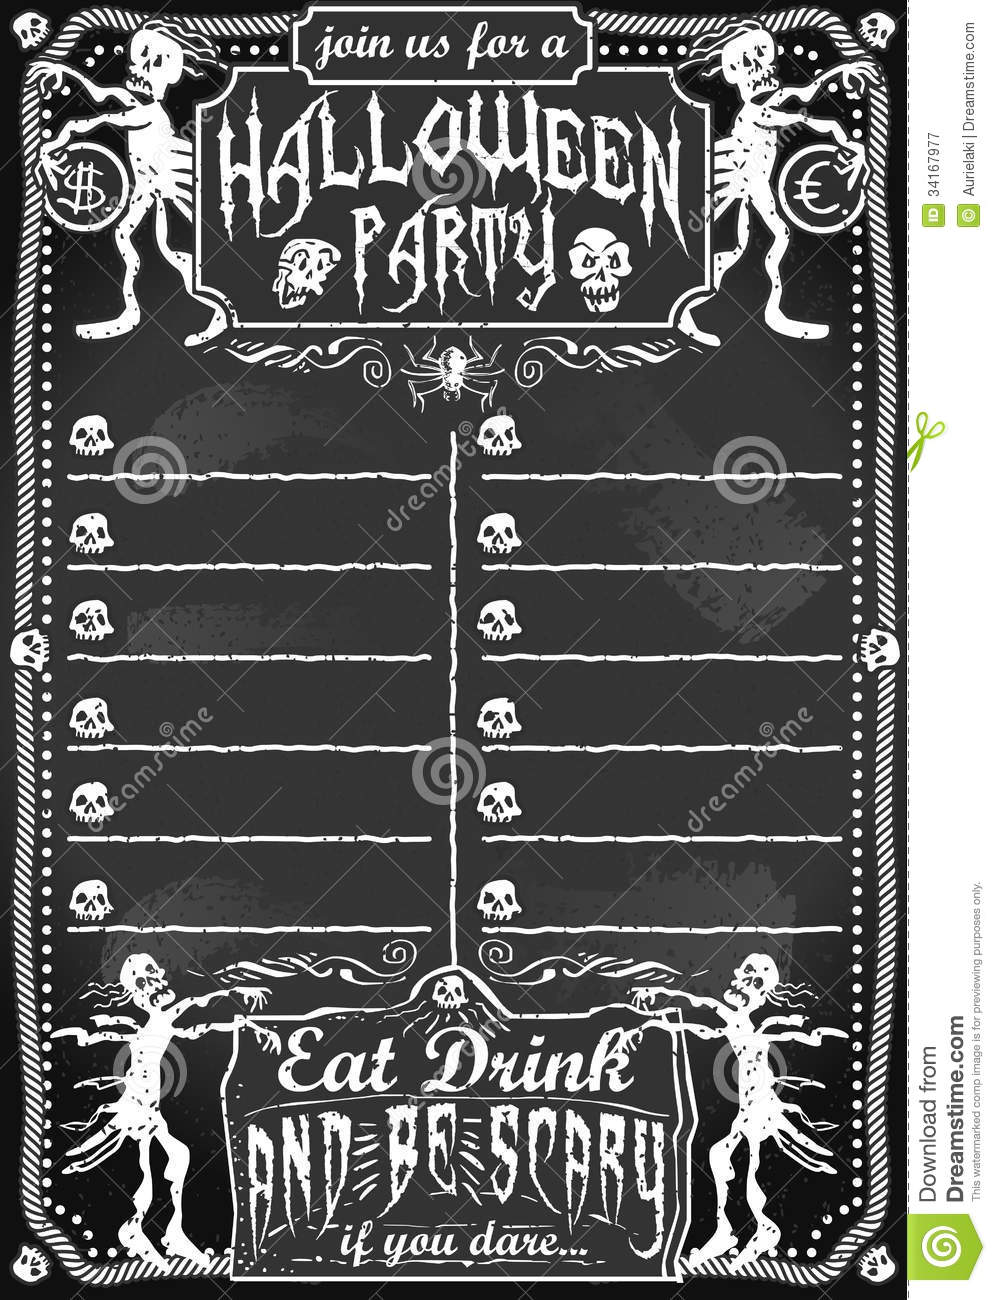 Vintage Blackboard For Halloween Party Royalty Free Stock ...